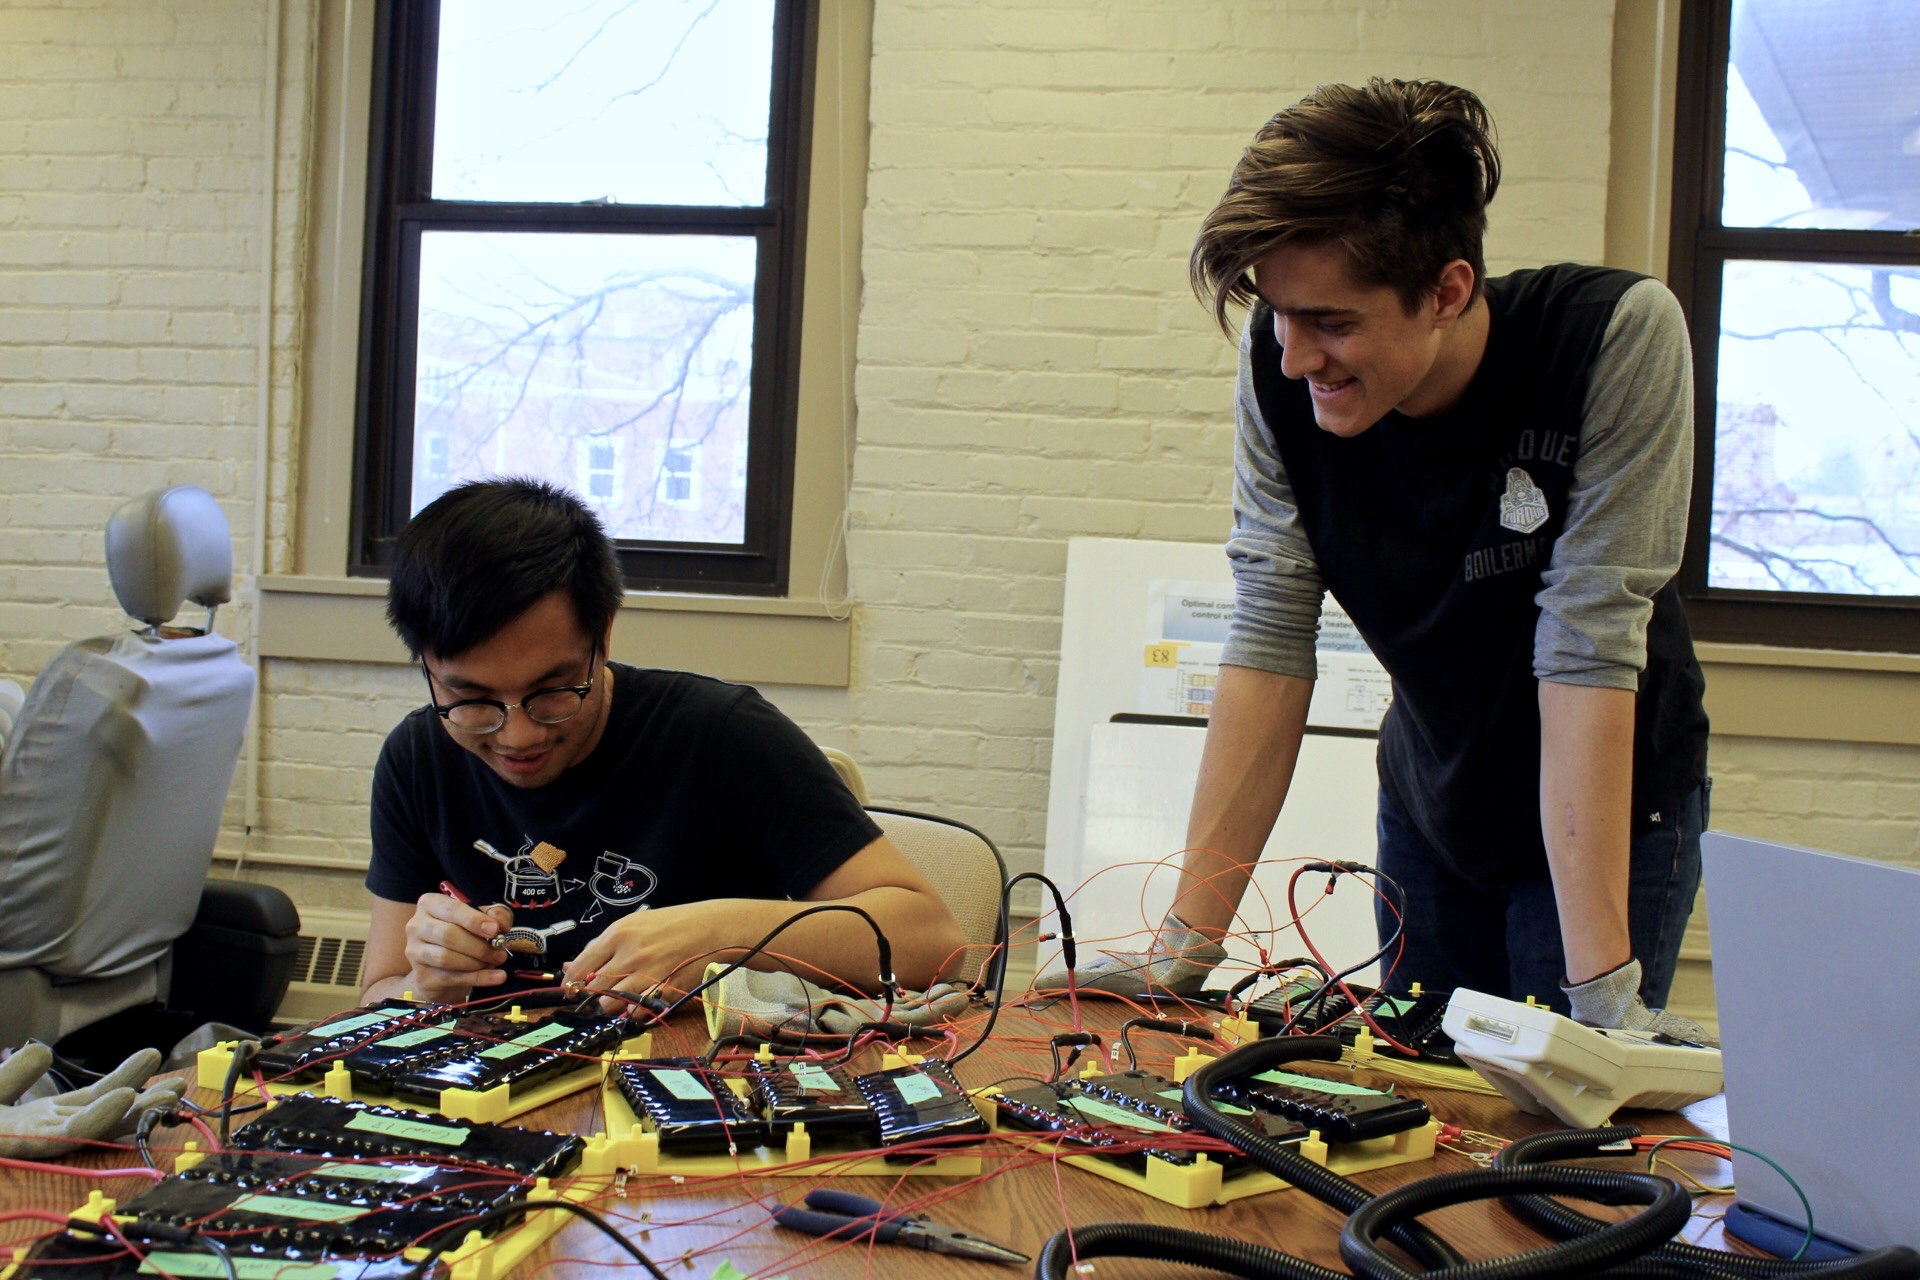 Emilio Sison and Nicholas Gildenhuys testing the battery management system (BMS).